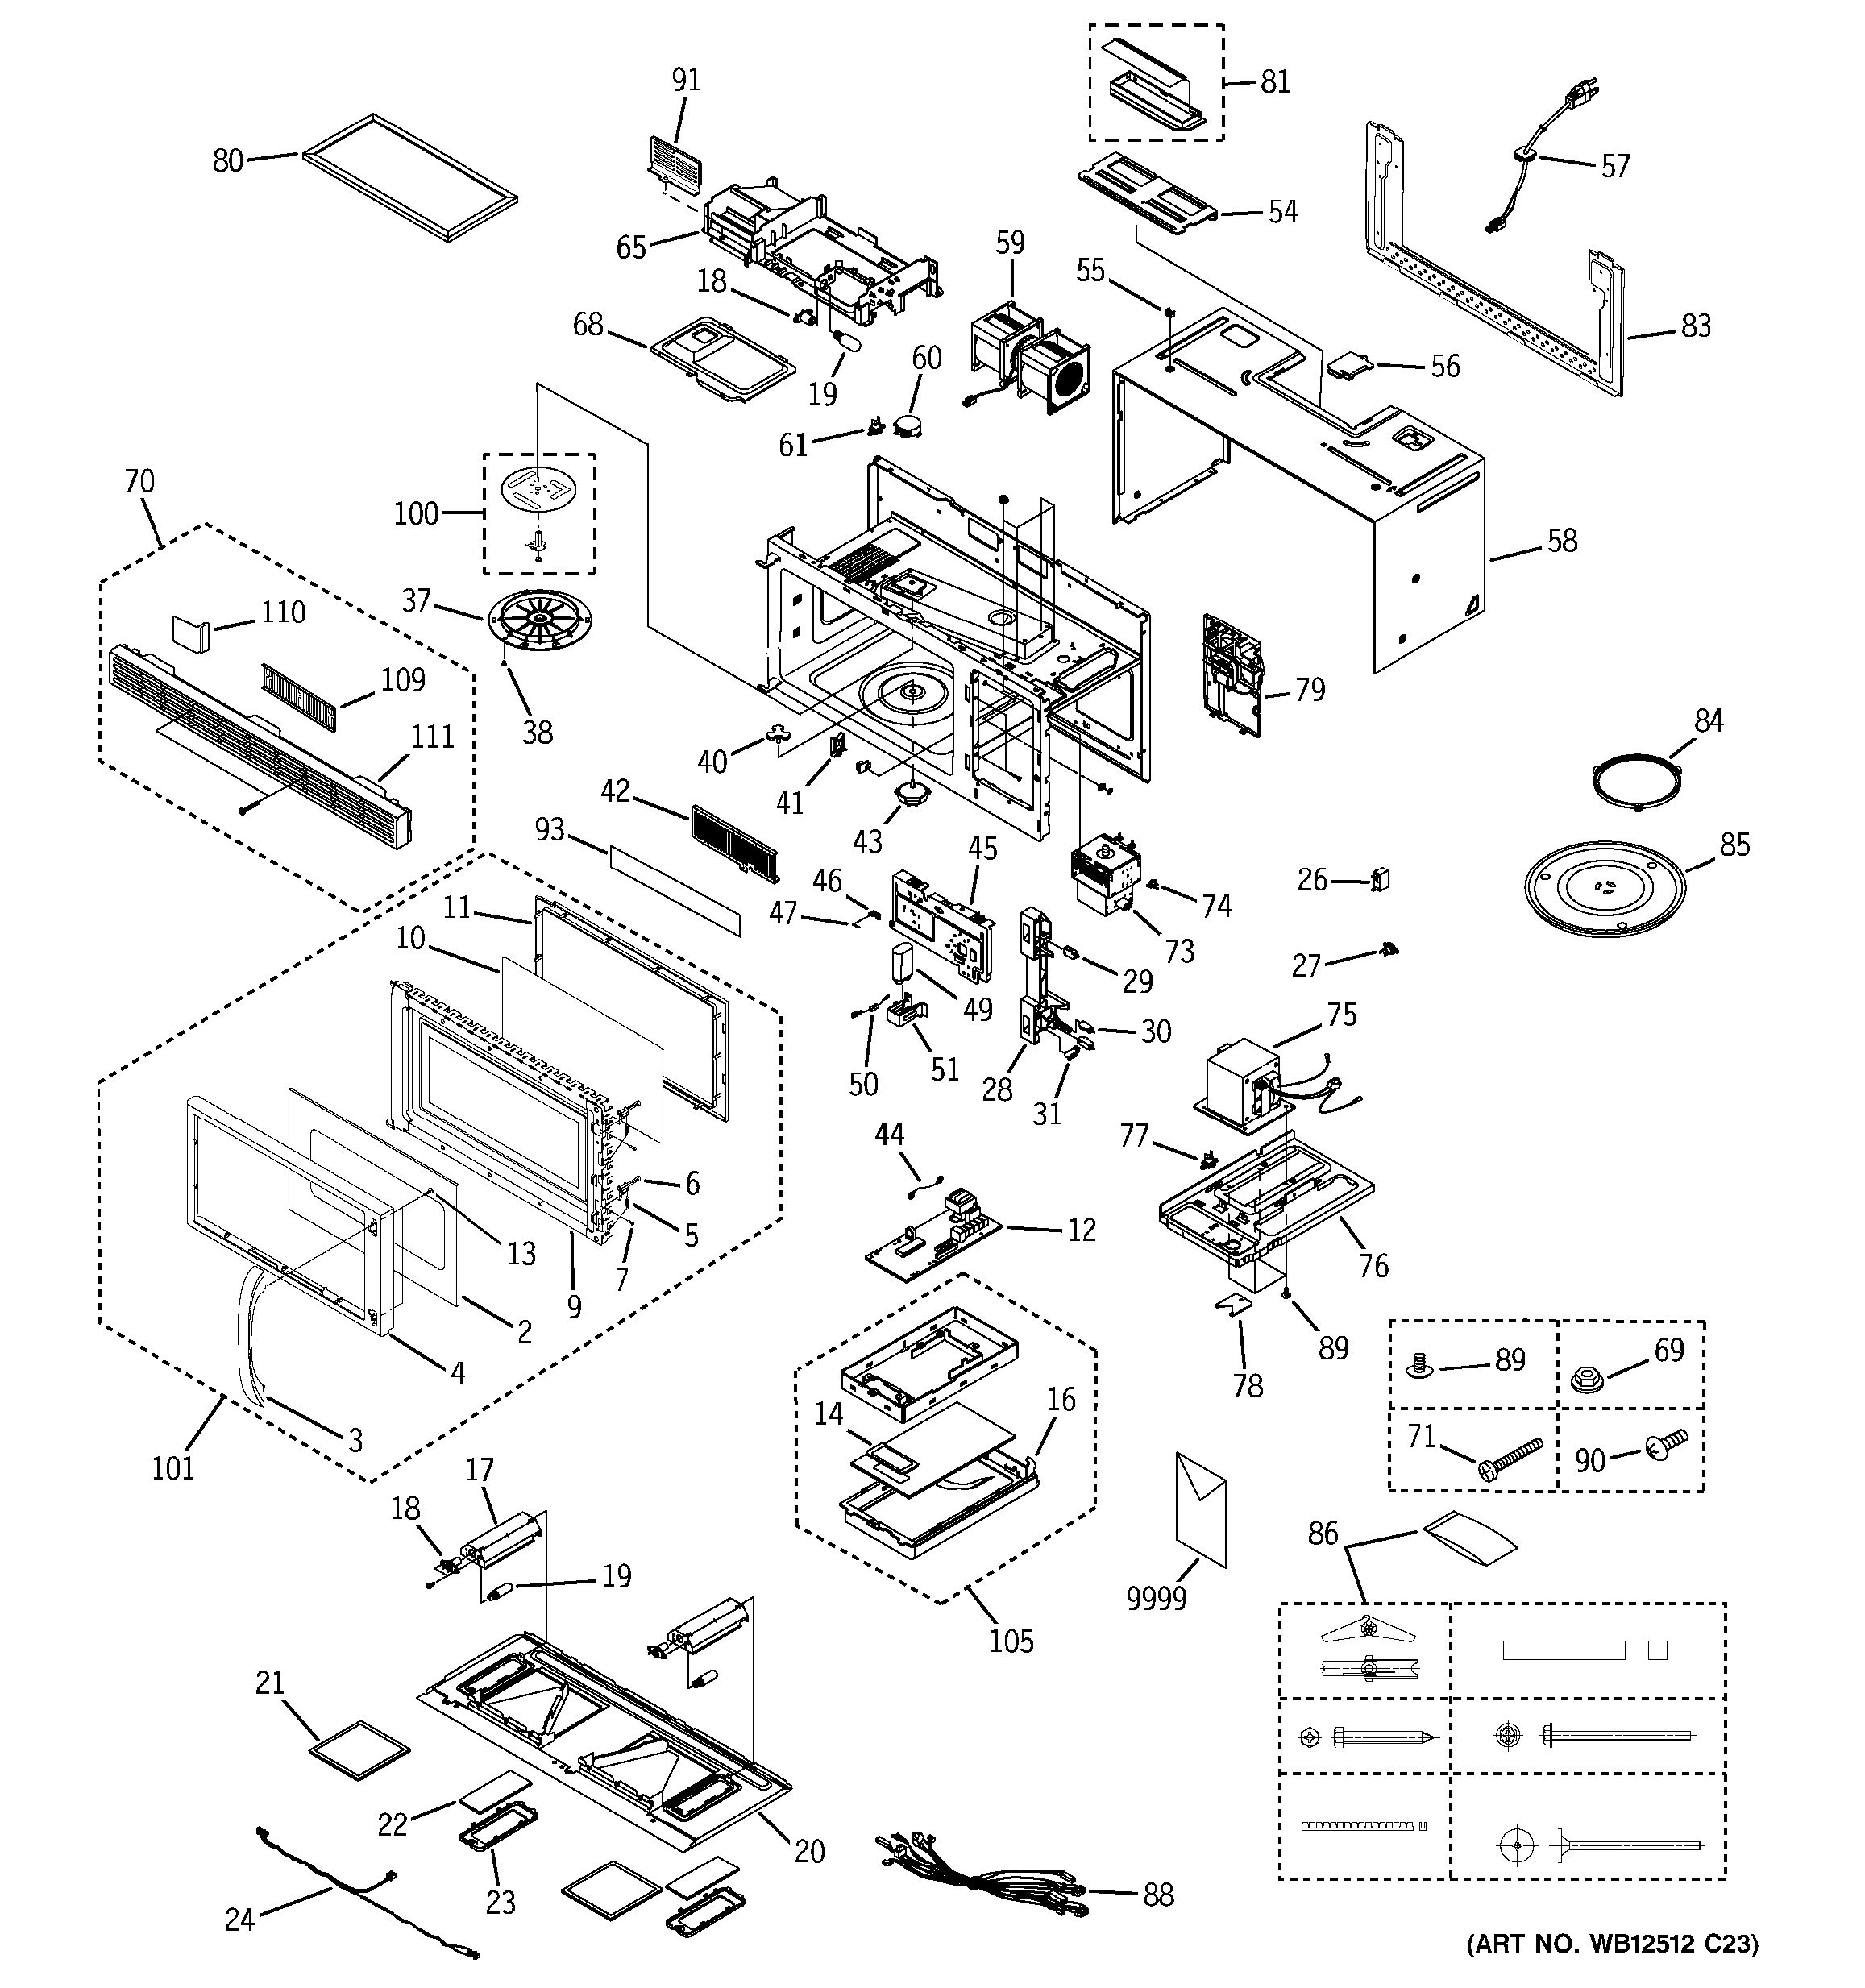 working of jvm with diagram blaupunkt rd4 n1 wiring assembly view for microwave jvm1430bd02